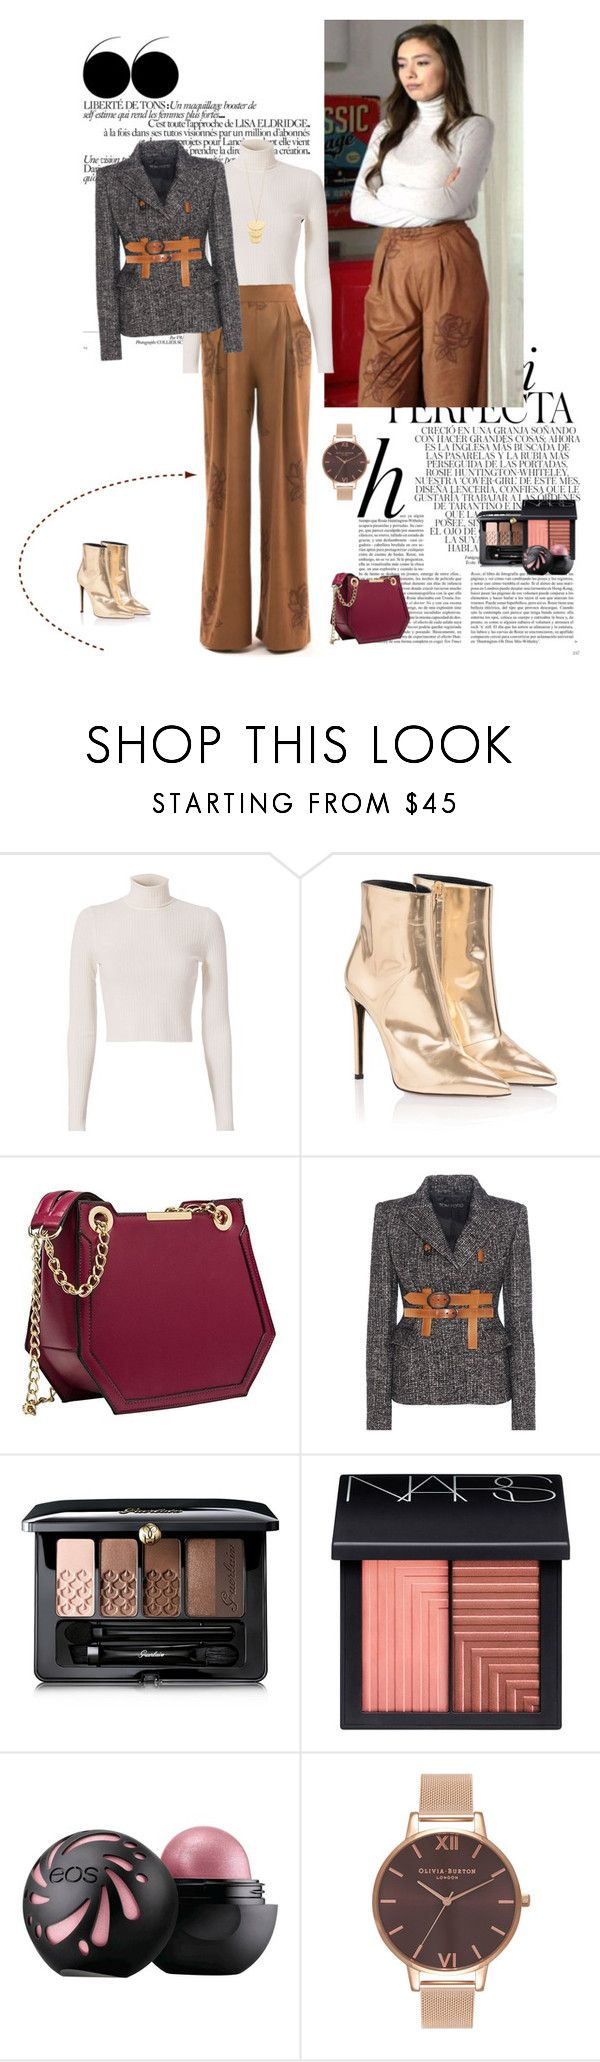 """Kara Sevda - Nihan Bolum 19"" by chaneladdicted ❤ liked on Polyvore featuring Whiteley, A.L.C., Balenciaga, Tom Ford, Guerlain, NARS Cosmetics, Olivia Burton and Gorjana"